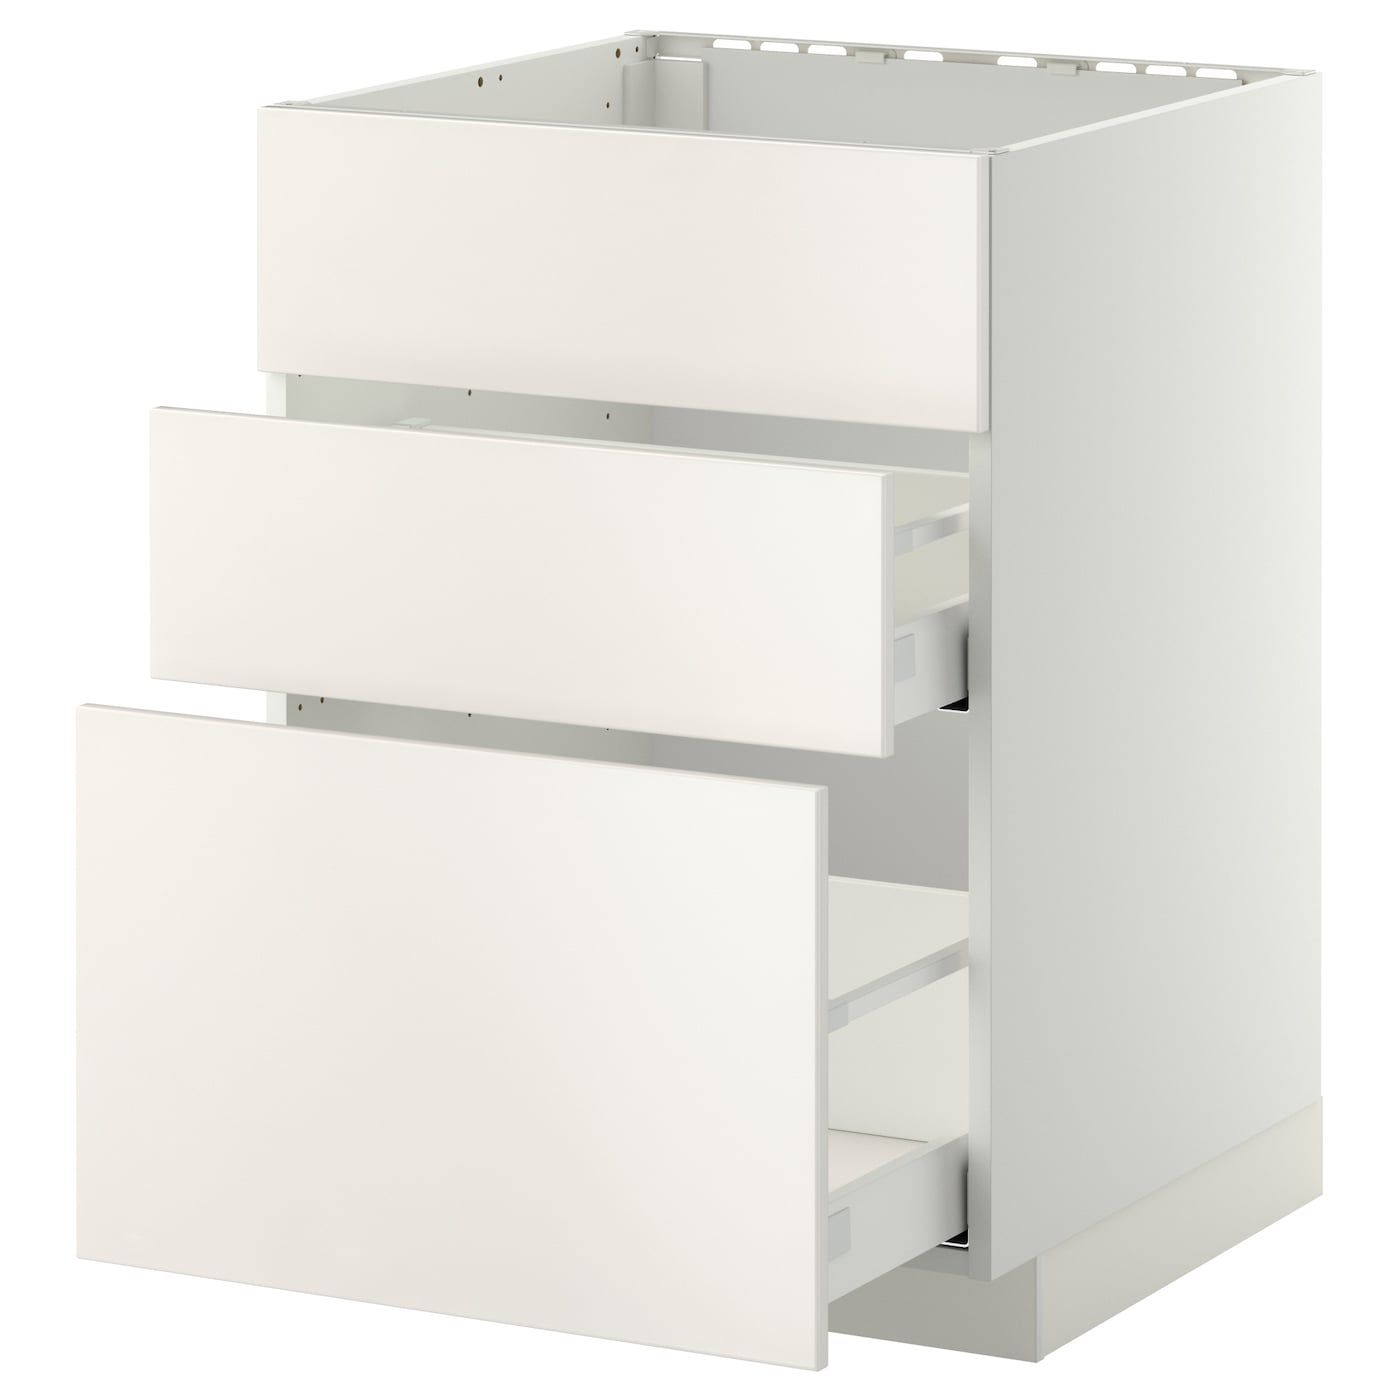 Metod Maximera Base Cab F Sink 3 Fronts 2 Drawers White Veddinge White 60x60 Cm With Images Ikea Drawers Cabinet